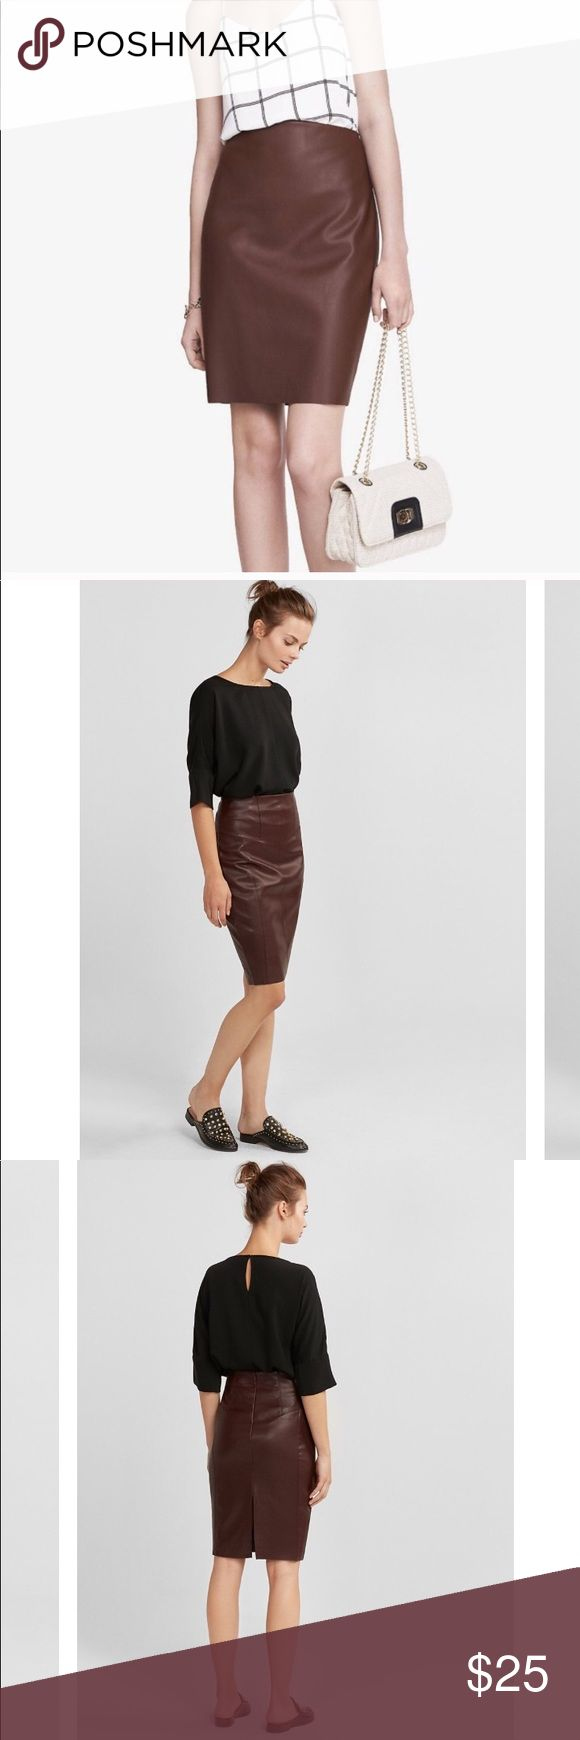 """Express faux leather brown pencil skirt Express faux leather brown pencil skirt size 2. Like new. Exact color is the first photo.  🌵Bundle deals available. I carry various sizes/brands. 🌵No trades, holds, or modeling. 🌵All reasonable offers accepted only through """"offer"""" button. No lowball offers please. 🌵Happy Poshing! Express Skirts Pencil"""